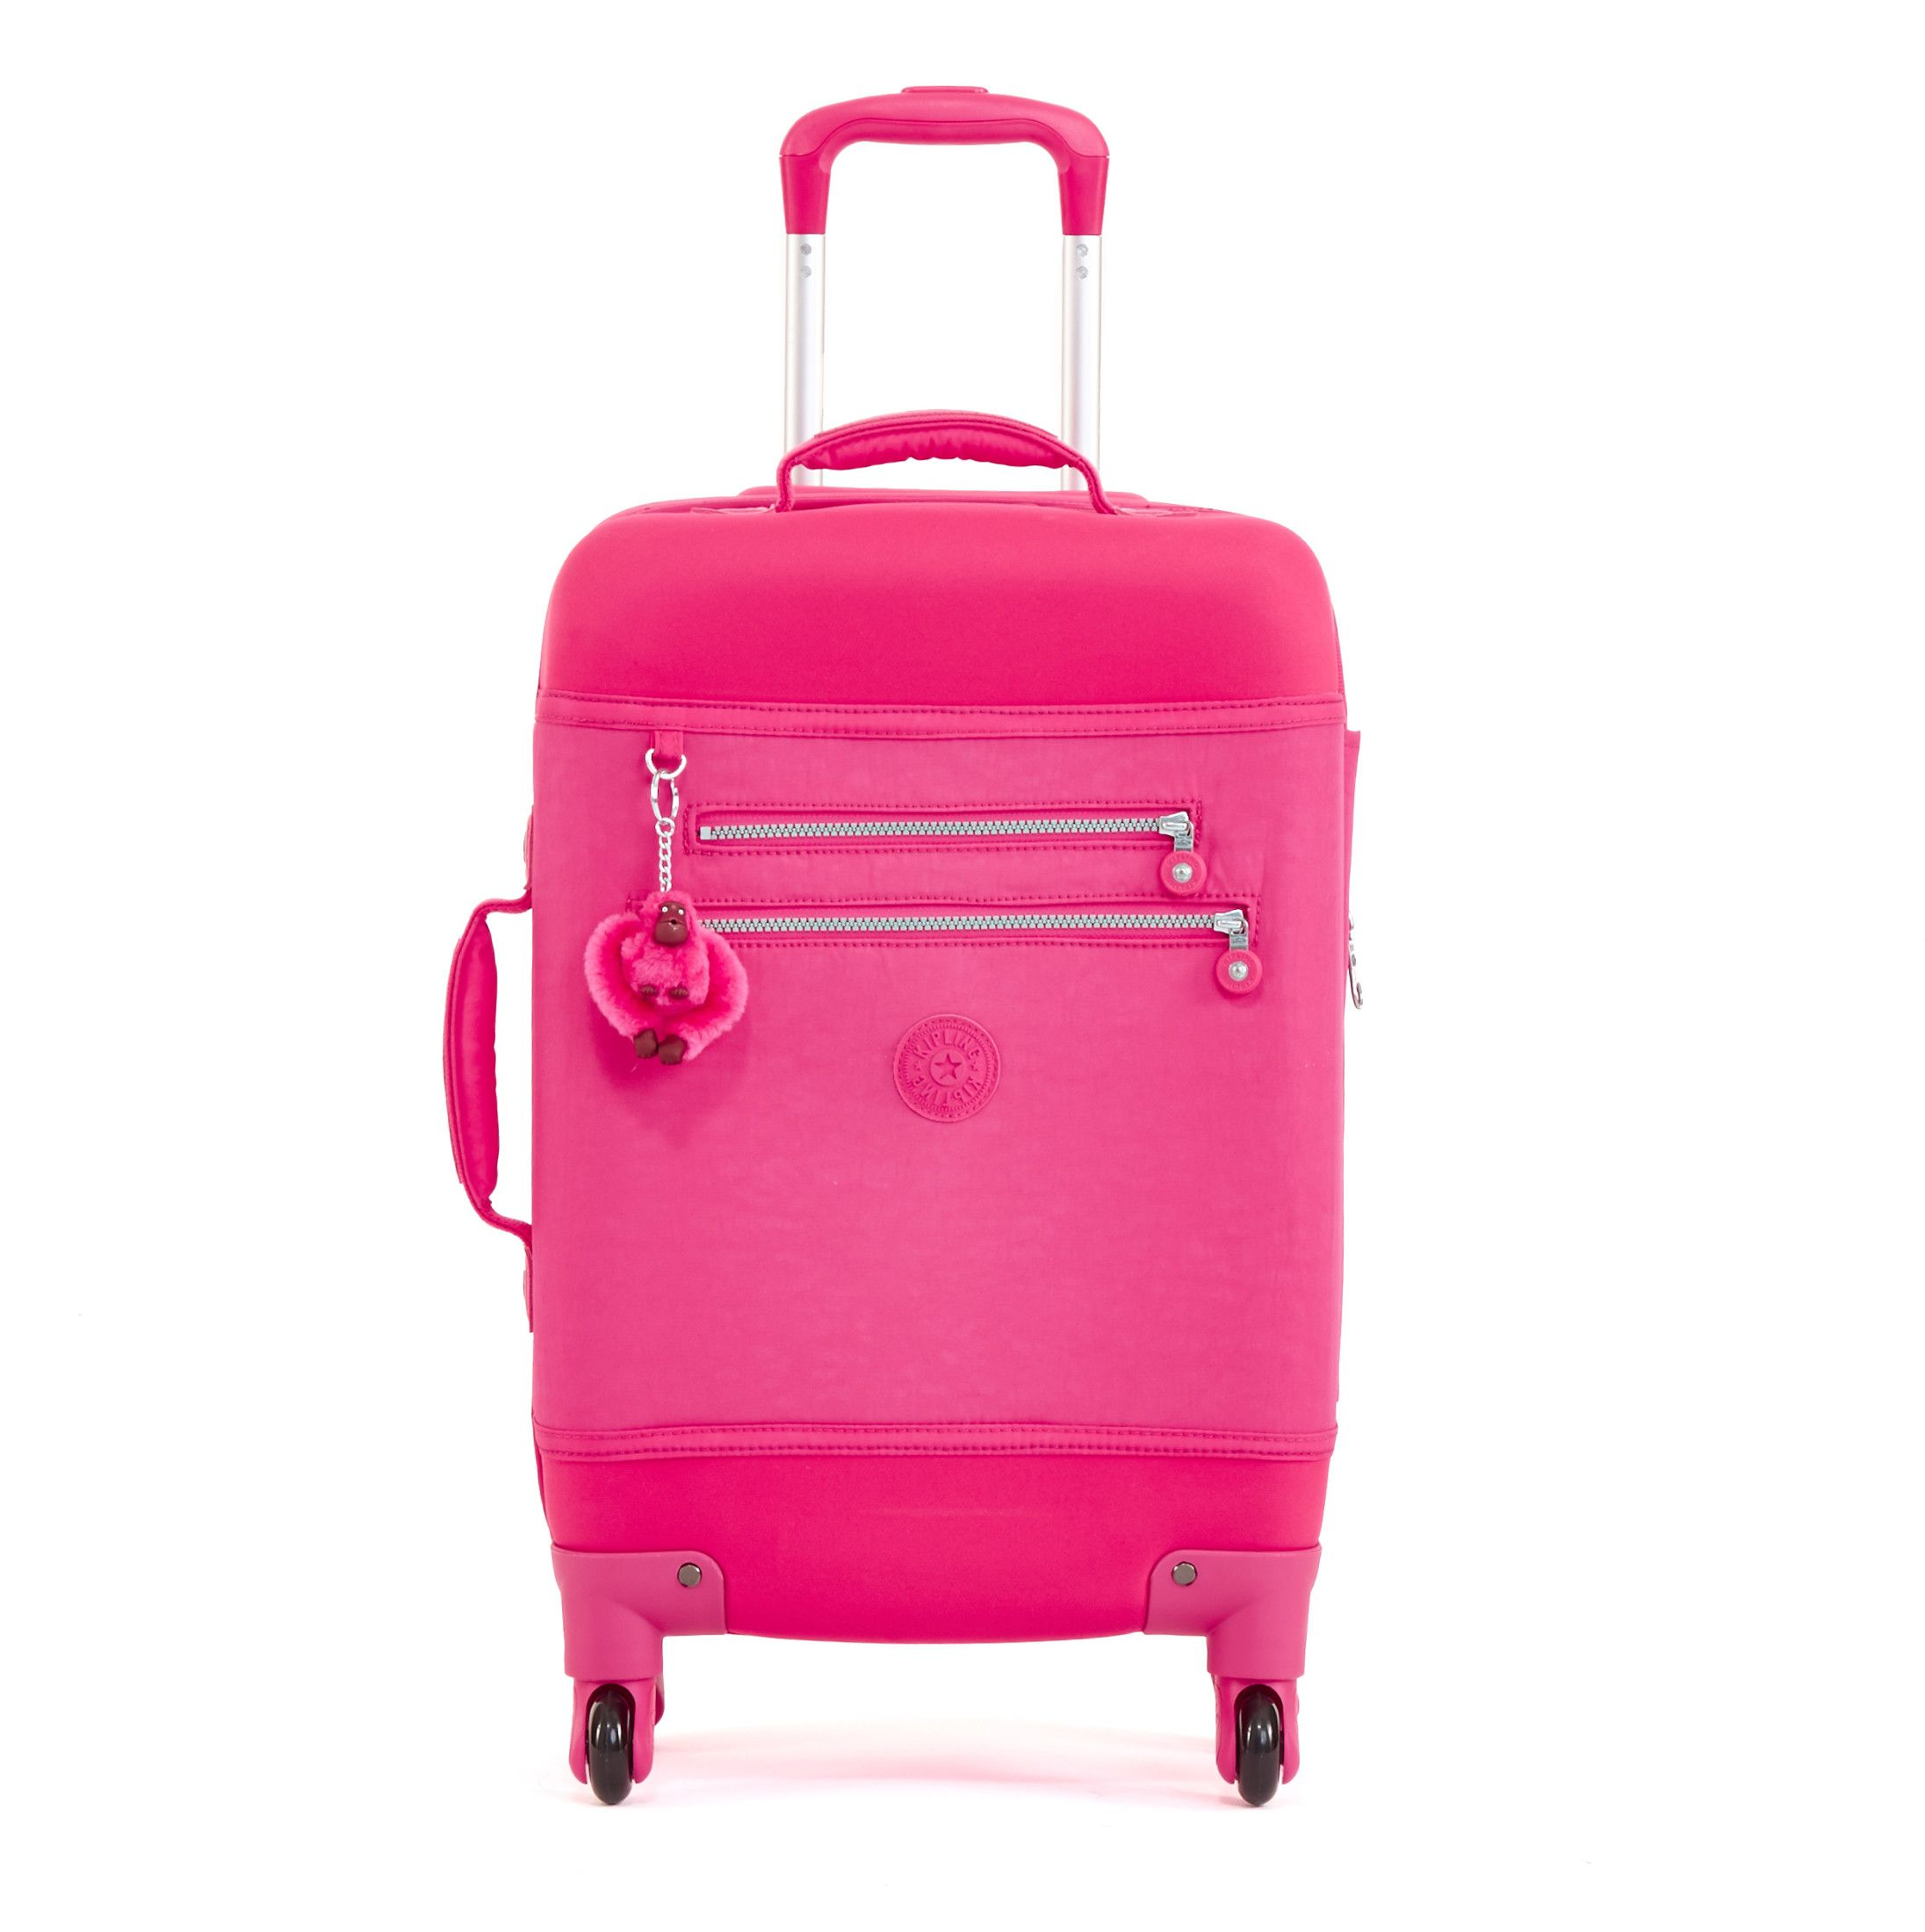 Monti S Rolling Luggage   Kipling bags and Bag